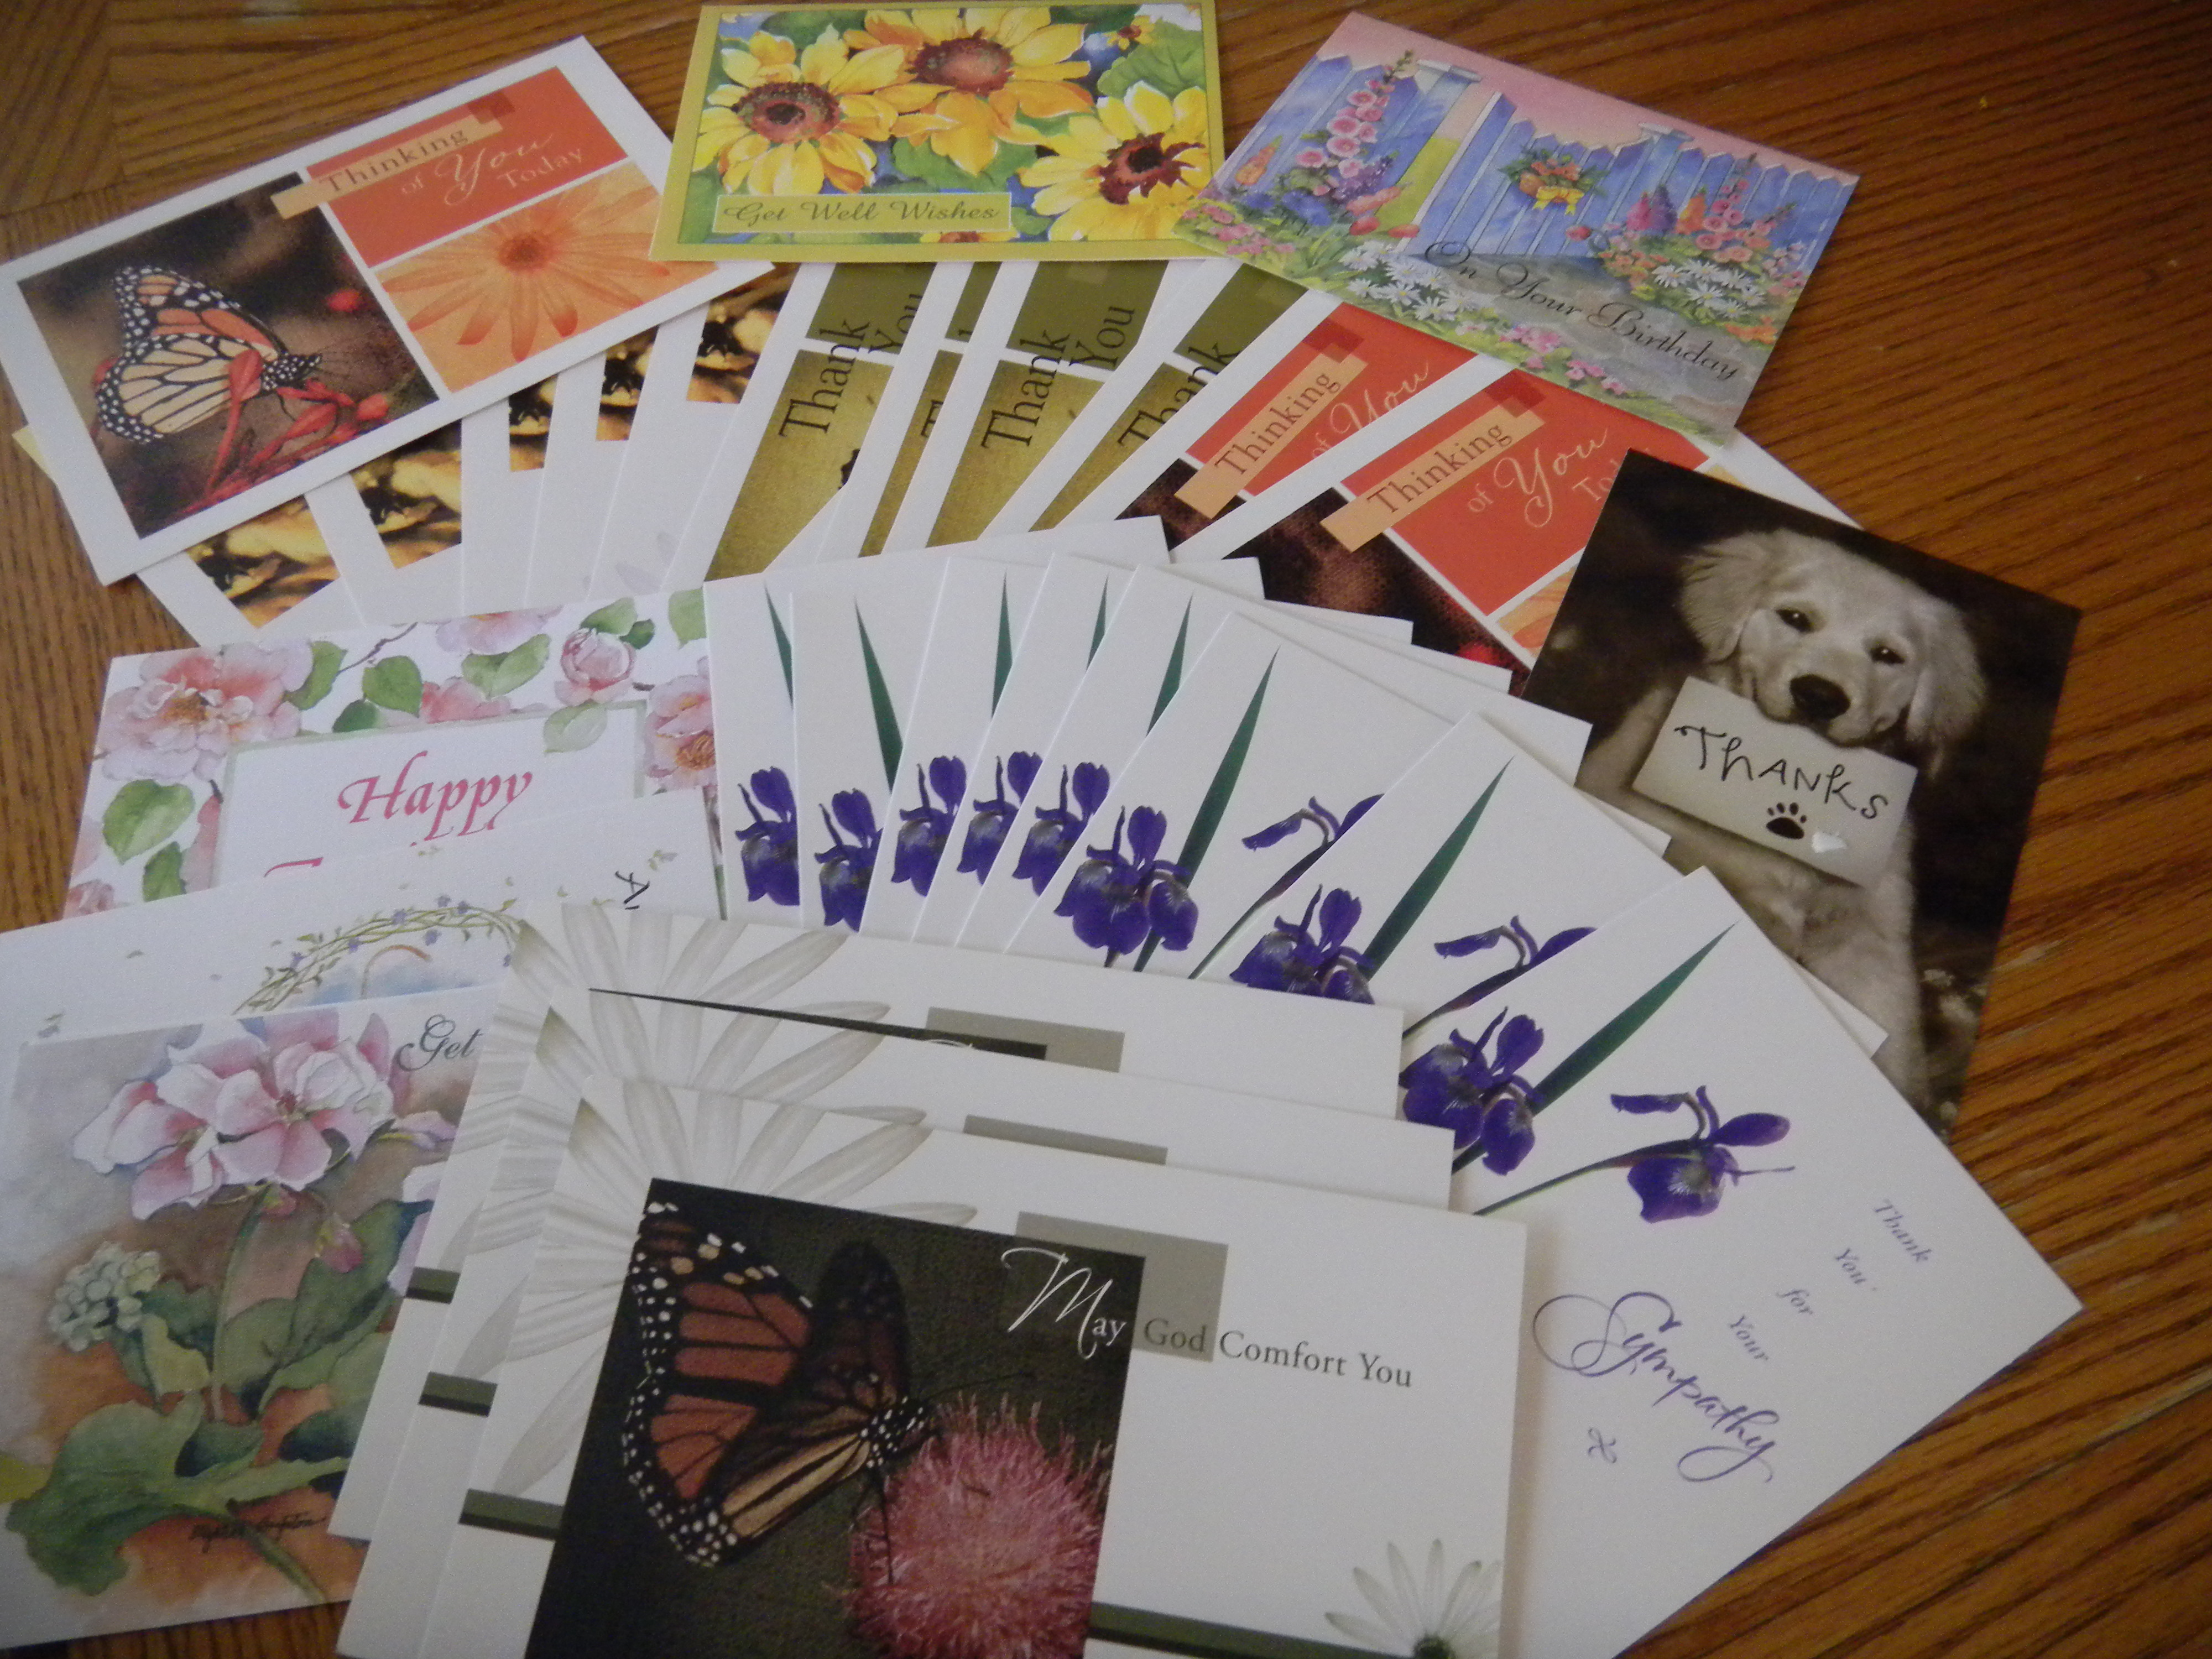 Go green by donating greeting cards think outside the bin for m4hsunfo